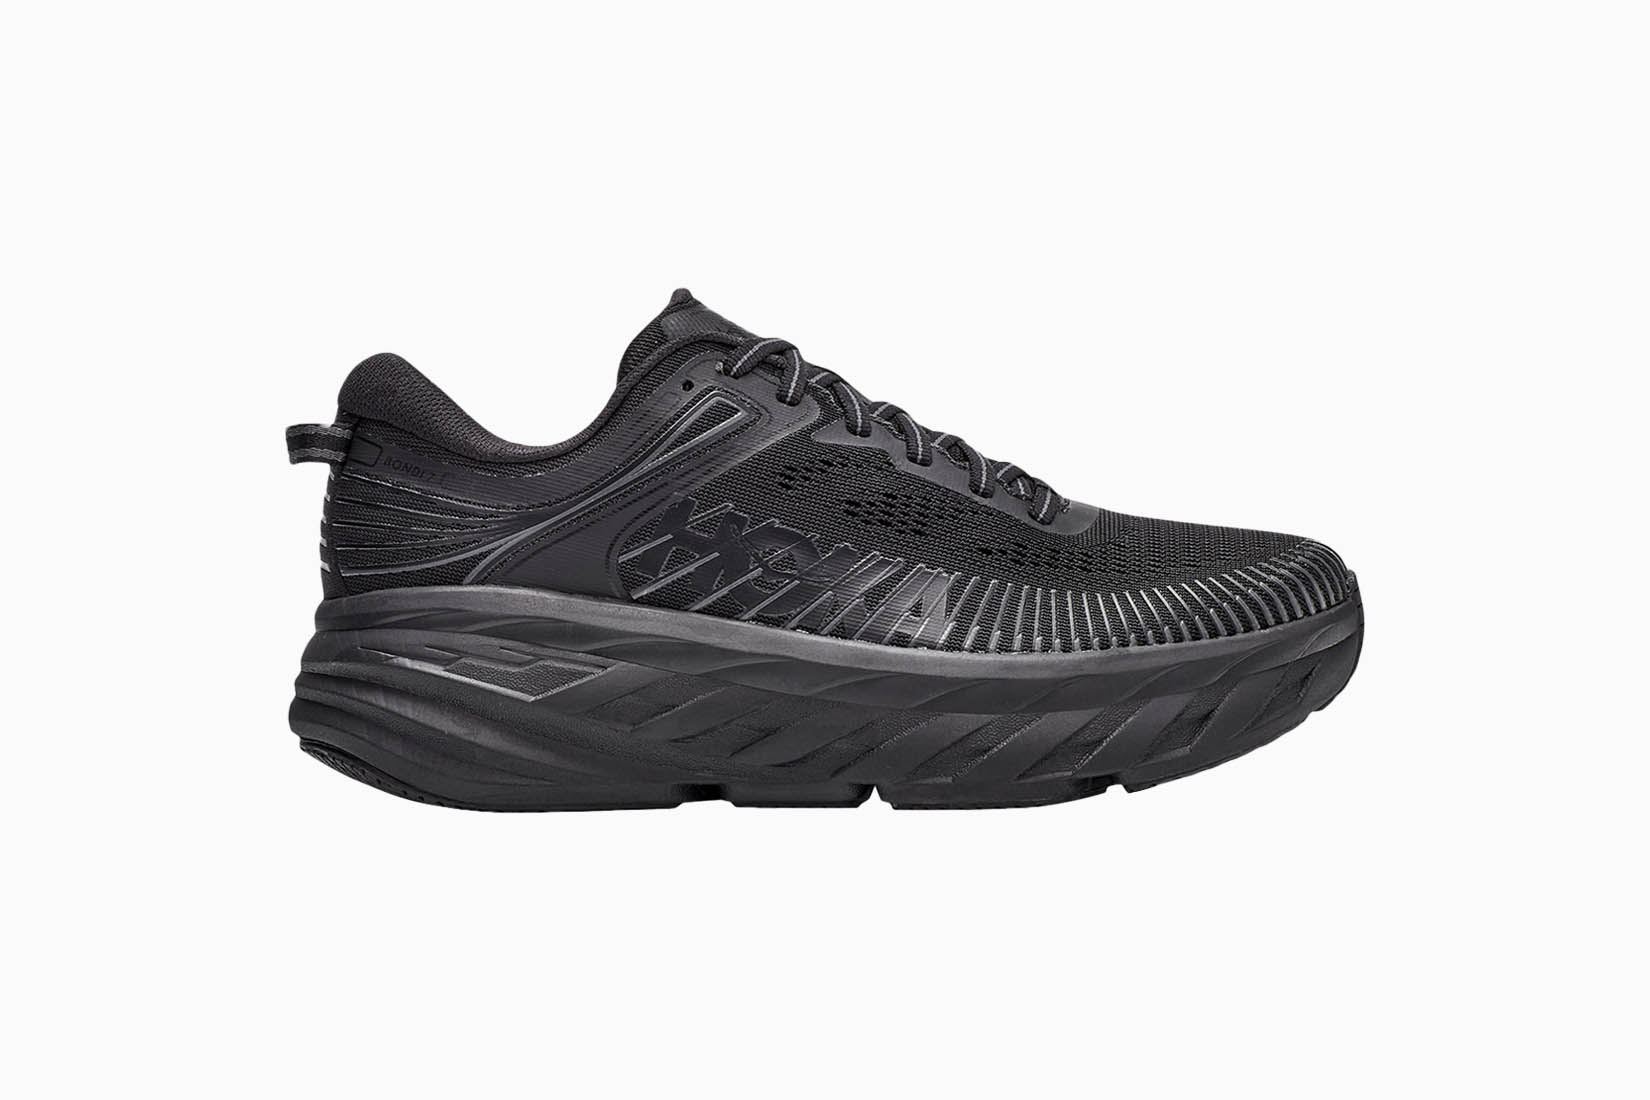 best shoes for standing all day men hoka one one review Luxe Digital